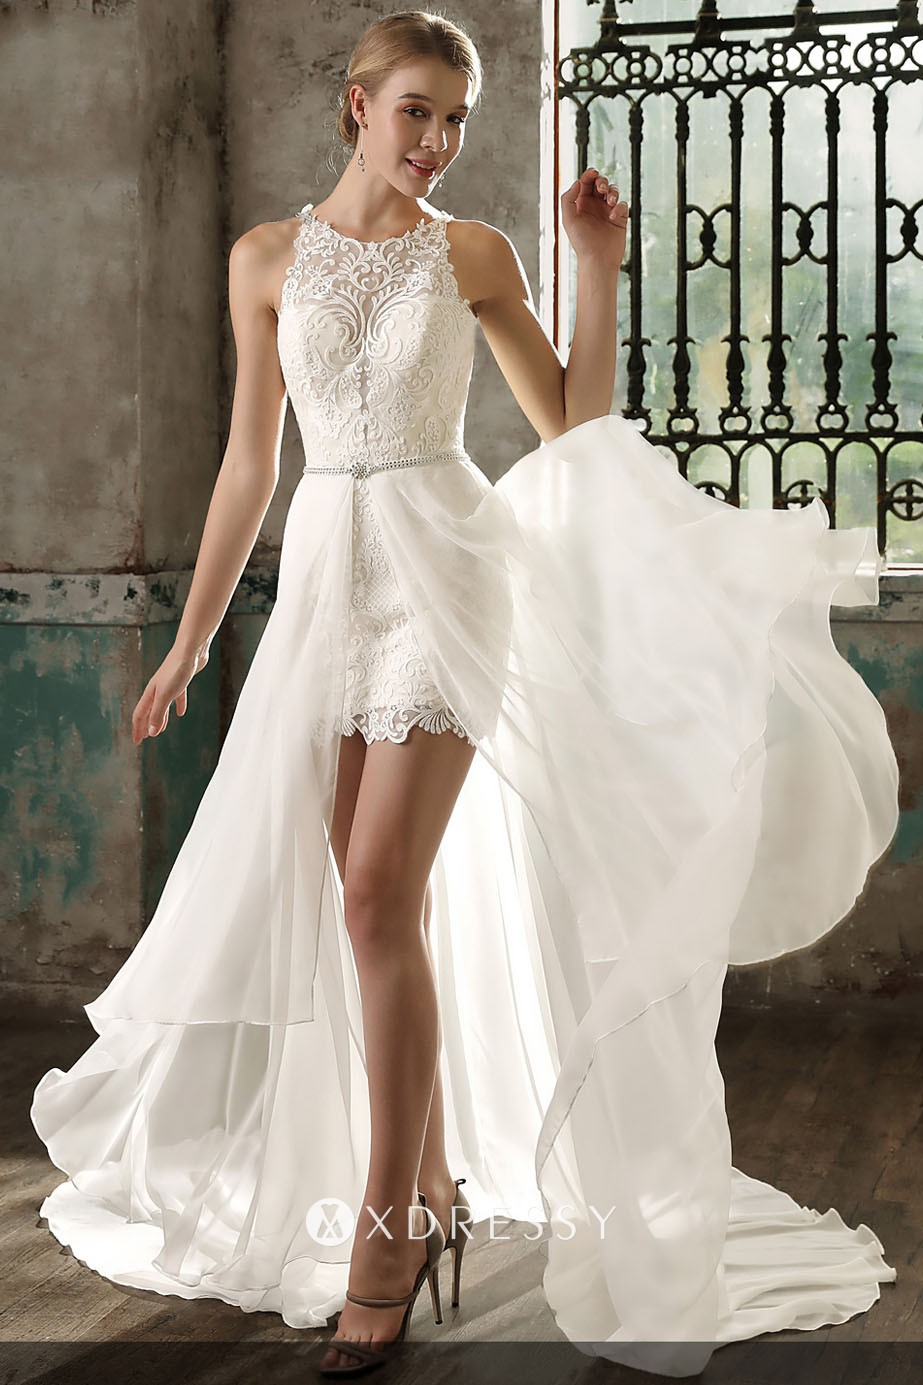 Fashion Lace And Chiffon Two Piece Wedding Dress Xdressy